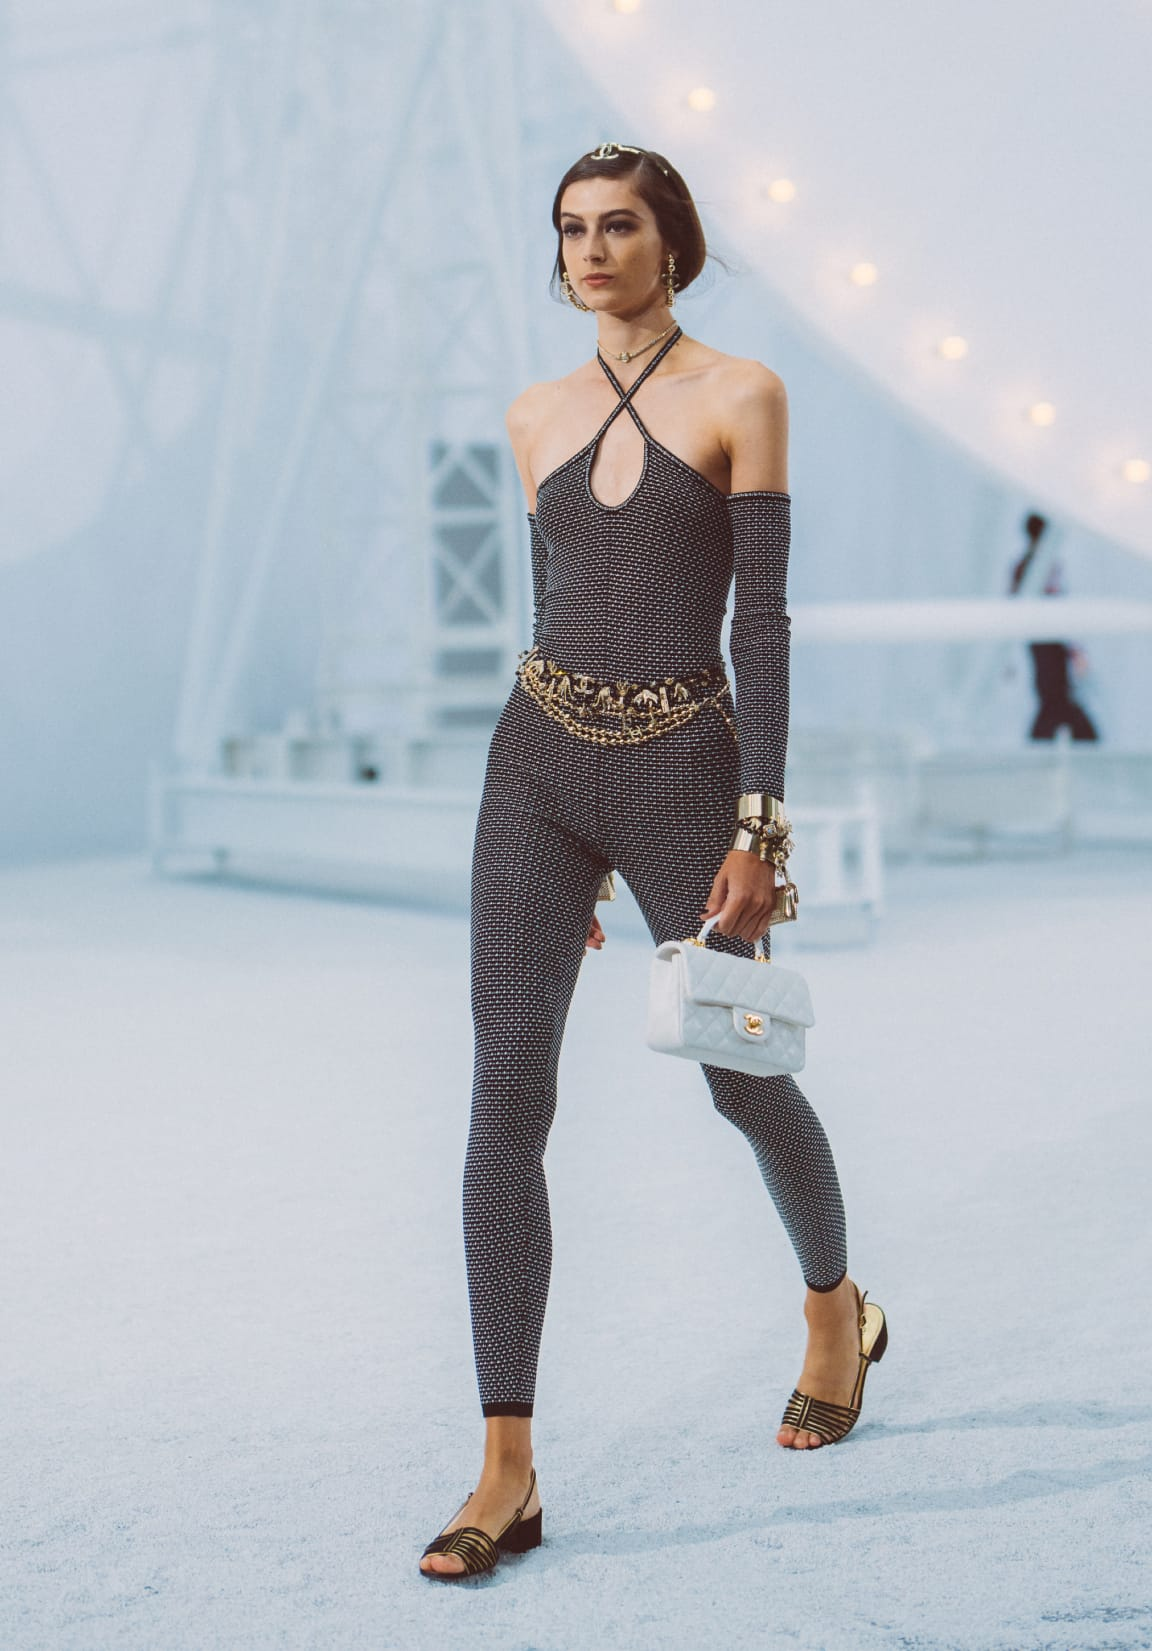 zoom - Image 1 - Look 8